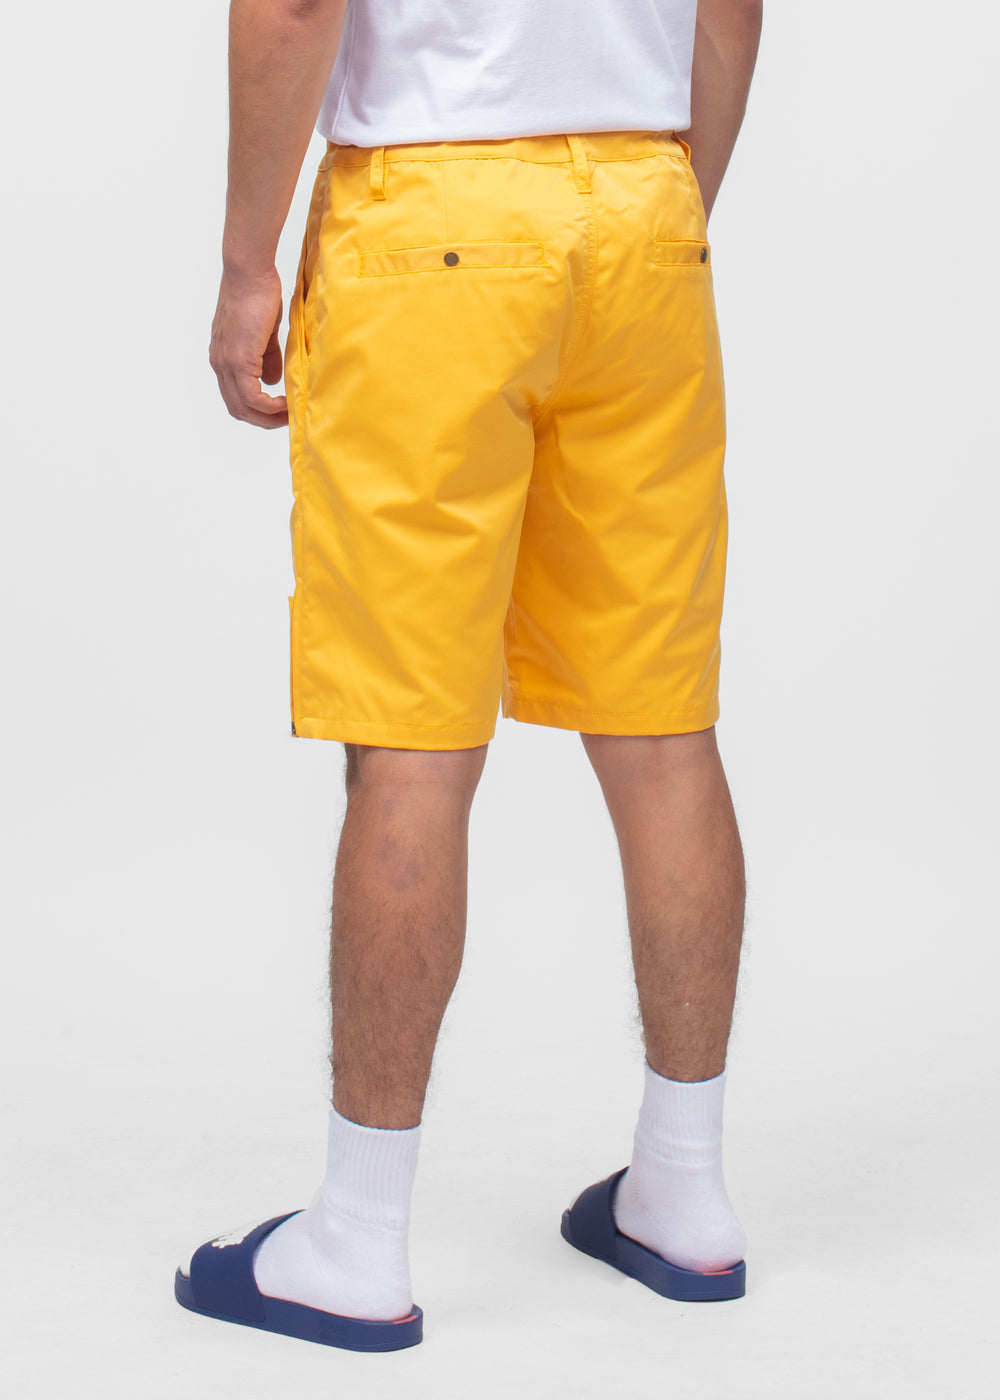 billionaire-boys-club-aviator-shorts-891-6101-ylw-ylw-3